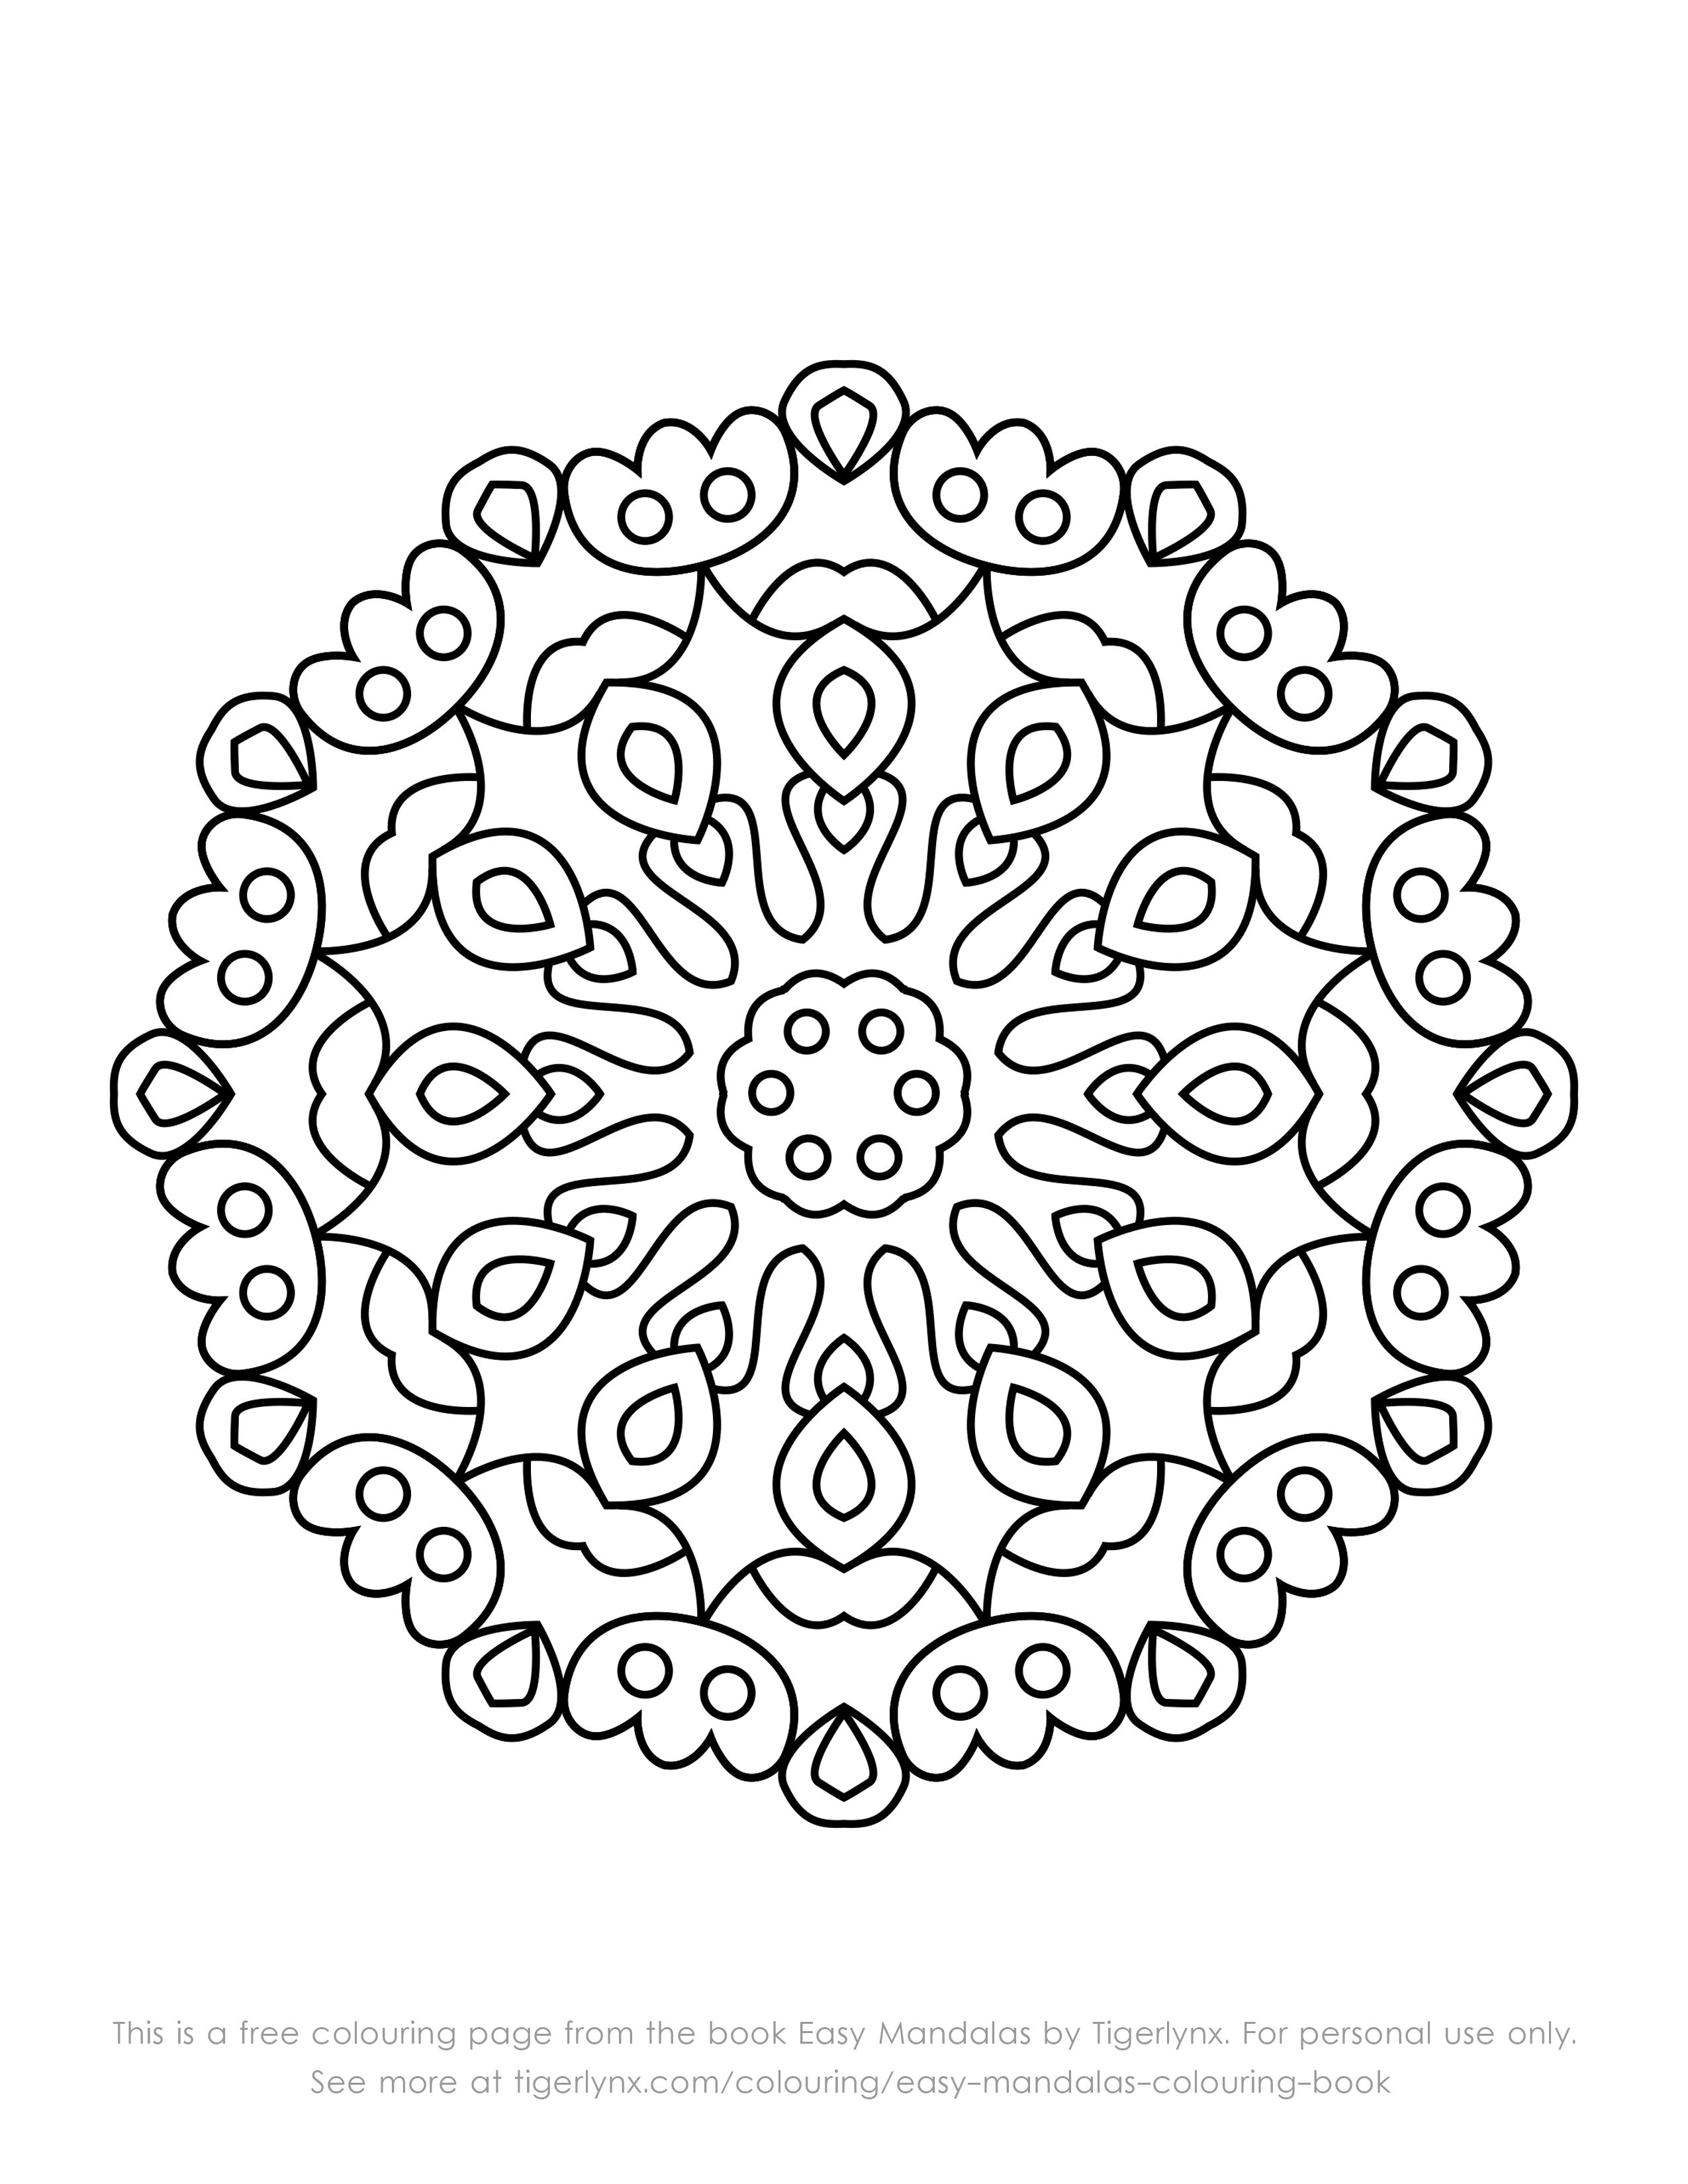 Free Mandala Colouring Page From The Book Easy Mandalas By